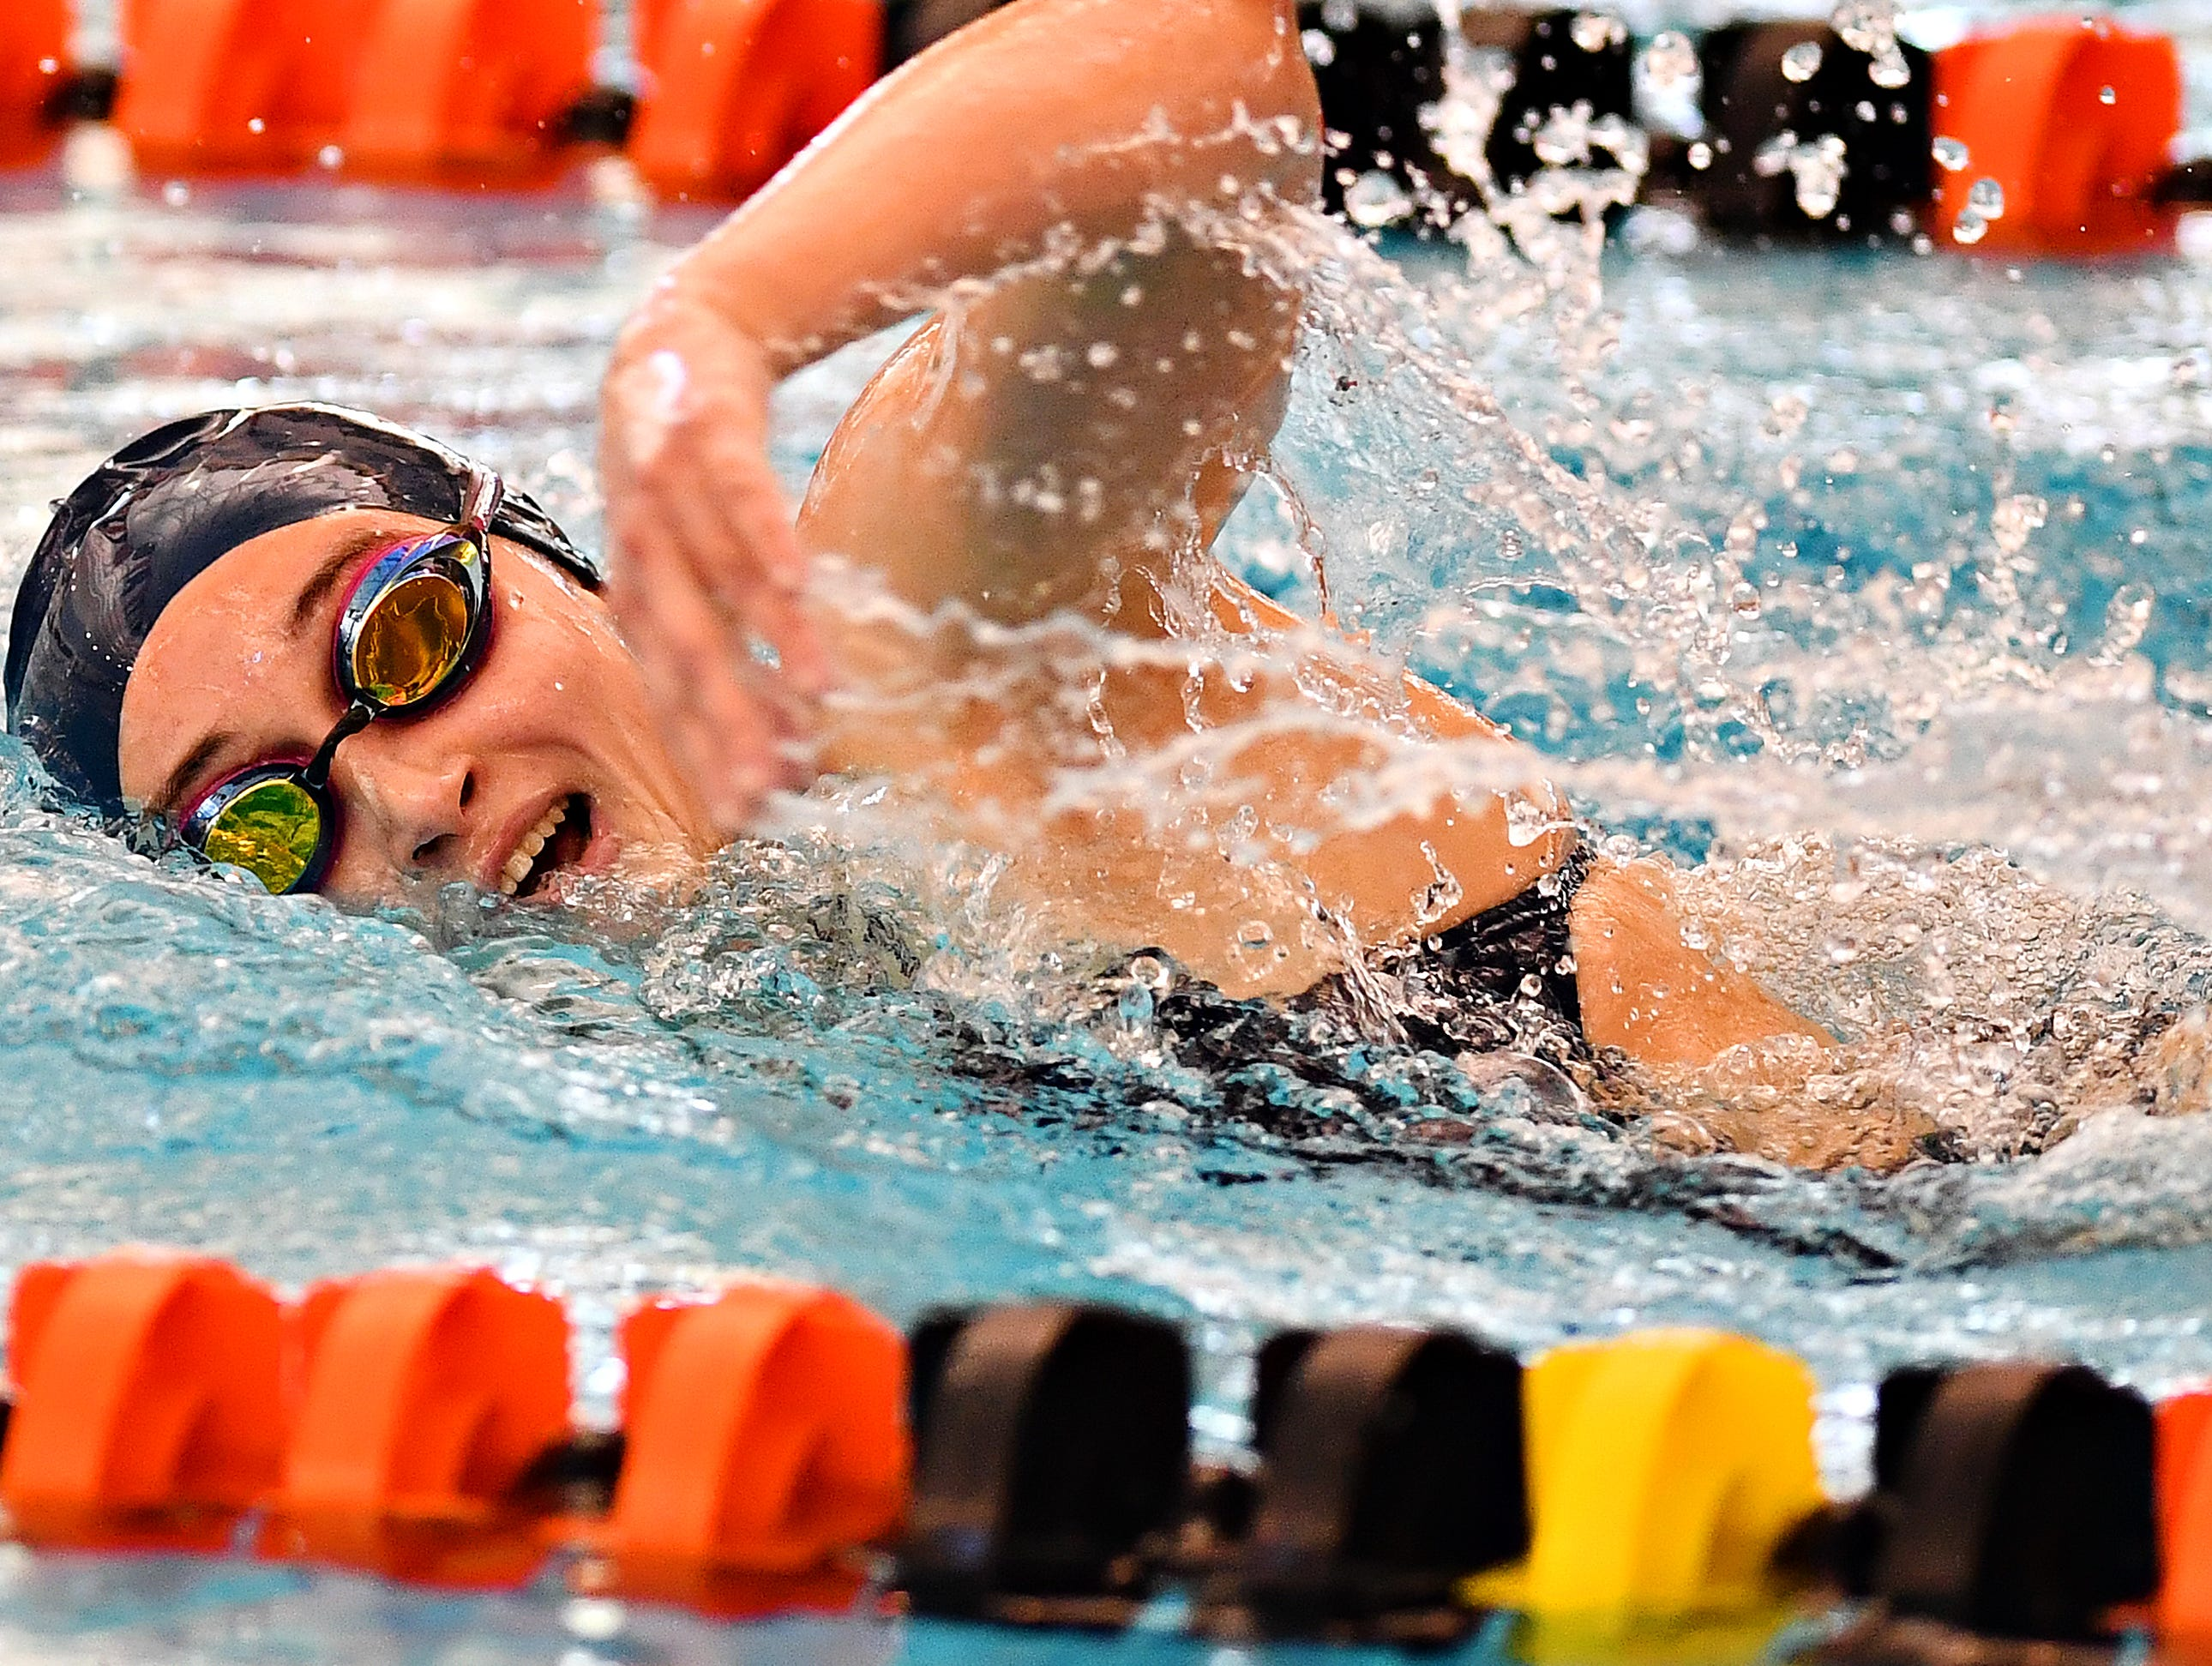 West York's Meghan French competes in the 500 Yard Freestyle event during York-Adams League Swimming Championship at Central York High School in Springettsbury Township, Saturday, Feb. 9, 2019. French would win the event at 5:08.48. Dawn J. Sagert photo